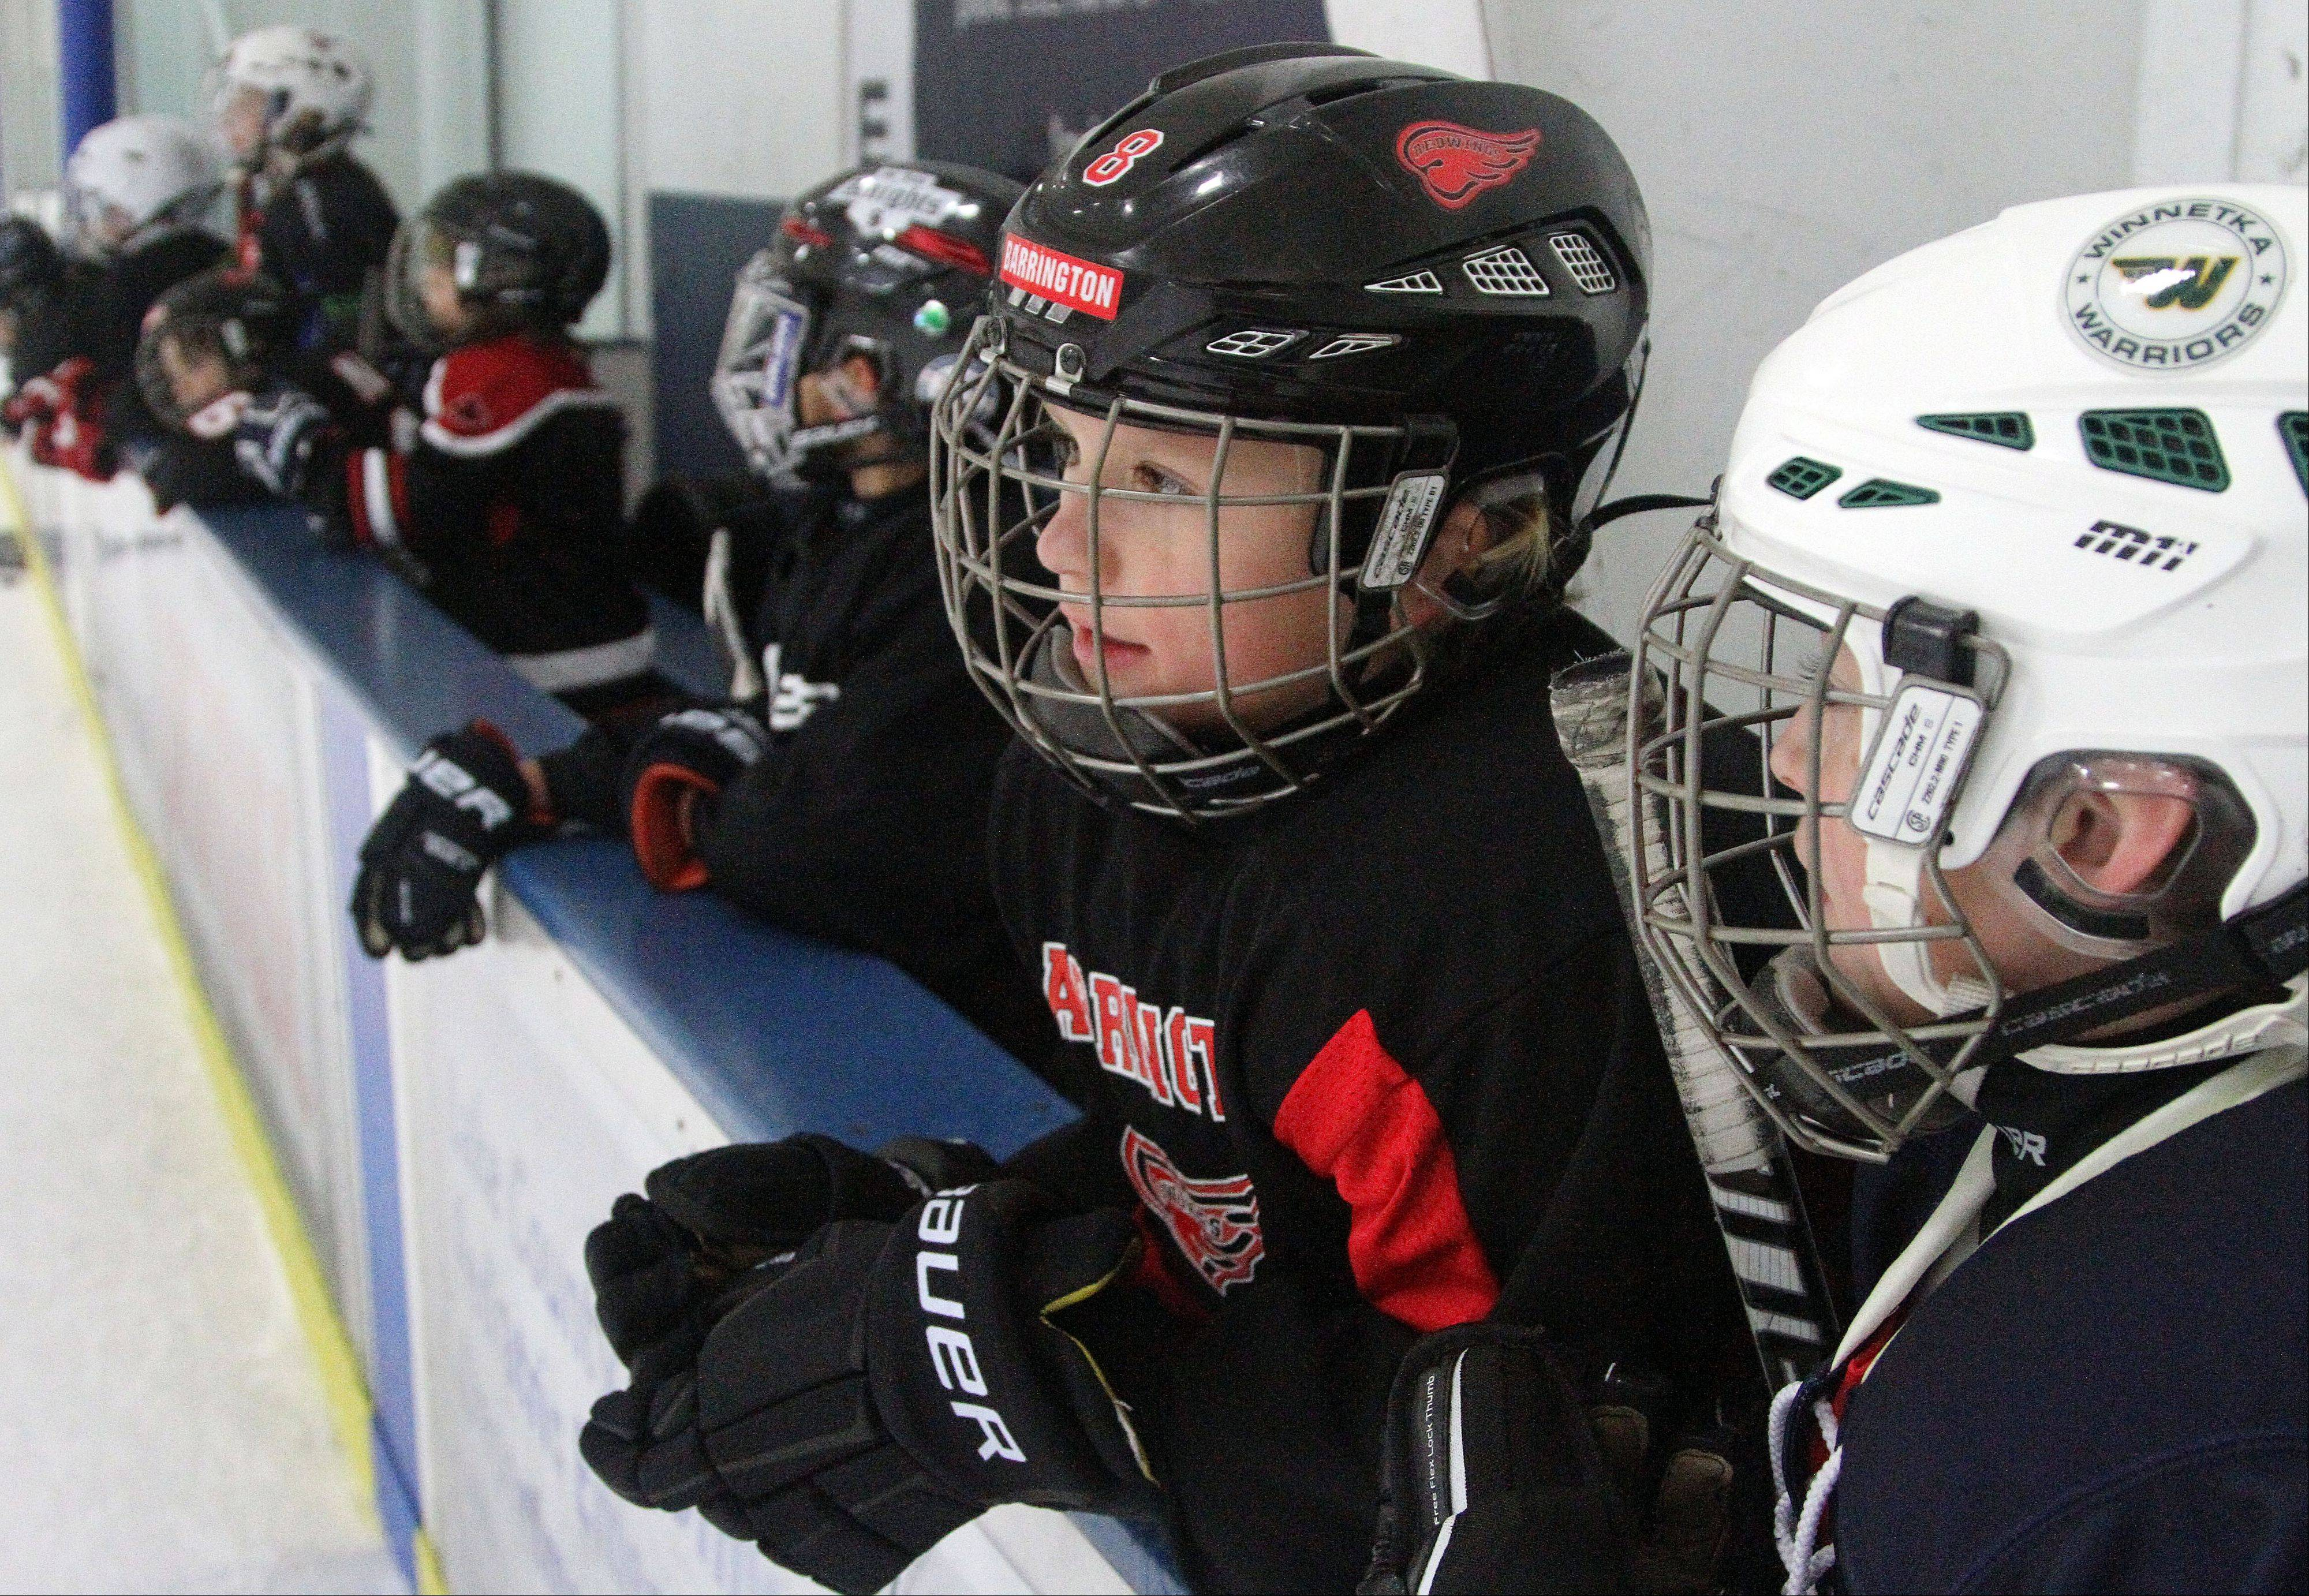 Pijus Zemaitis, 9, of Barrington, and Ben Snyderman, of Winnetka, listen to instructions from the bench as former Chicago Blackhawks player Steve Dubinsky leads a hockey clinic Wednesday at Glacier Ice Arena in Vernon Hills.